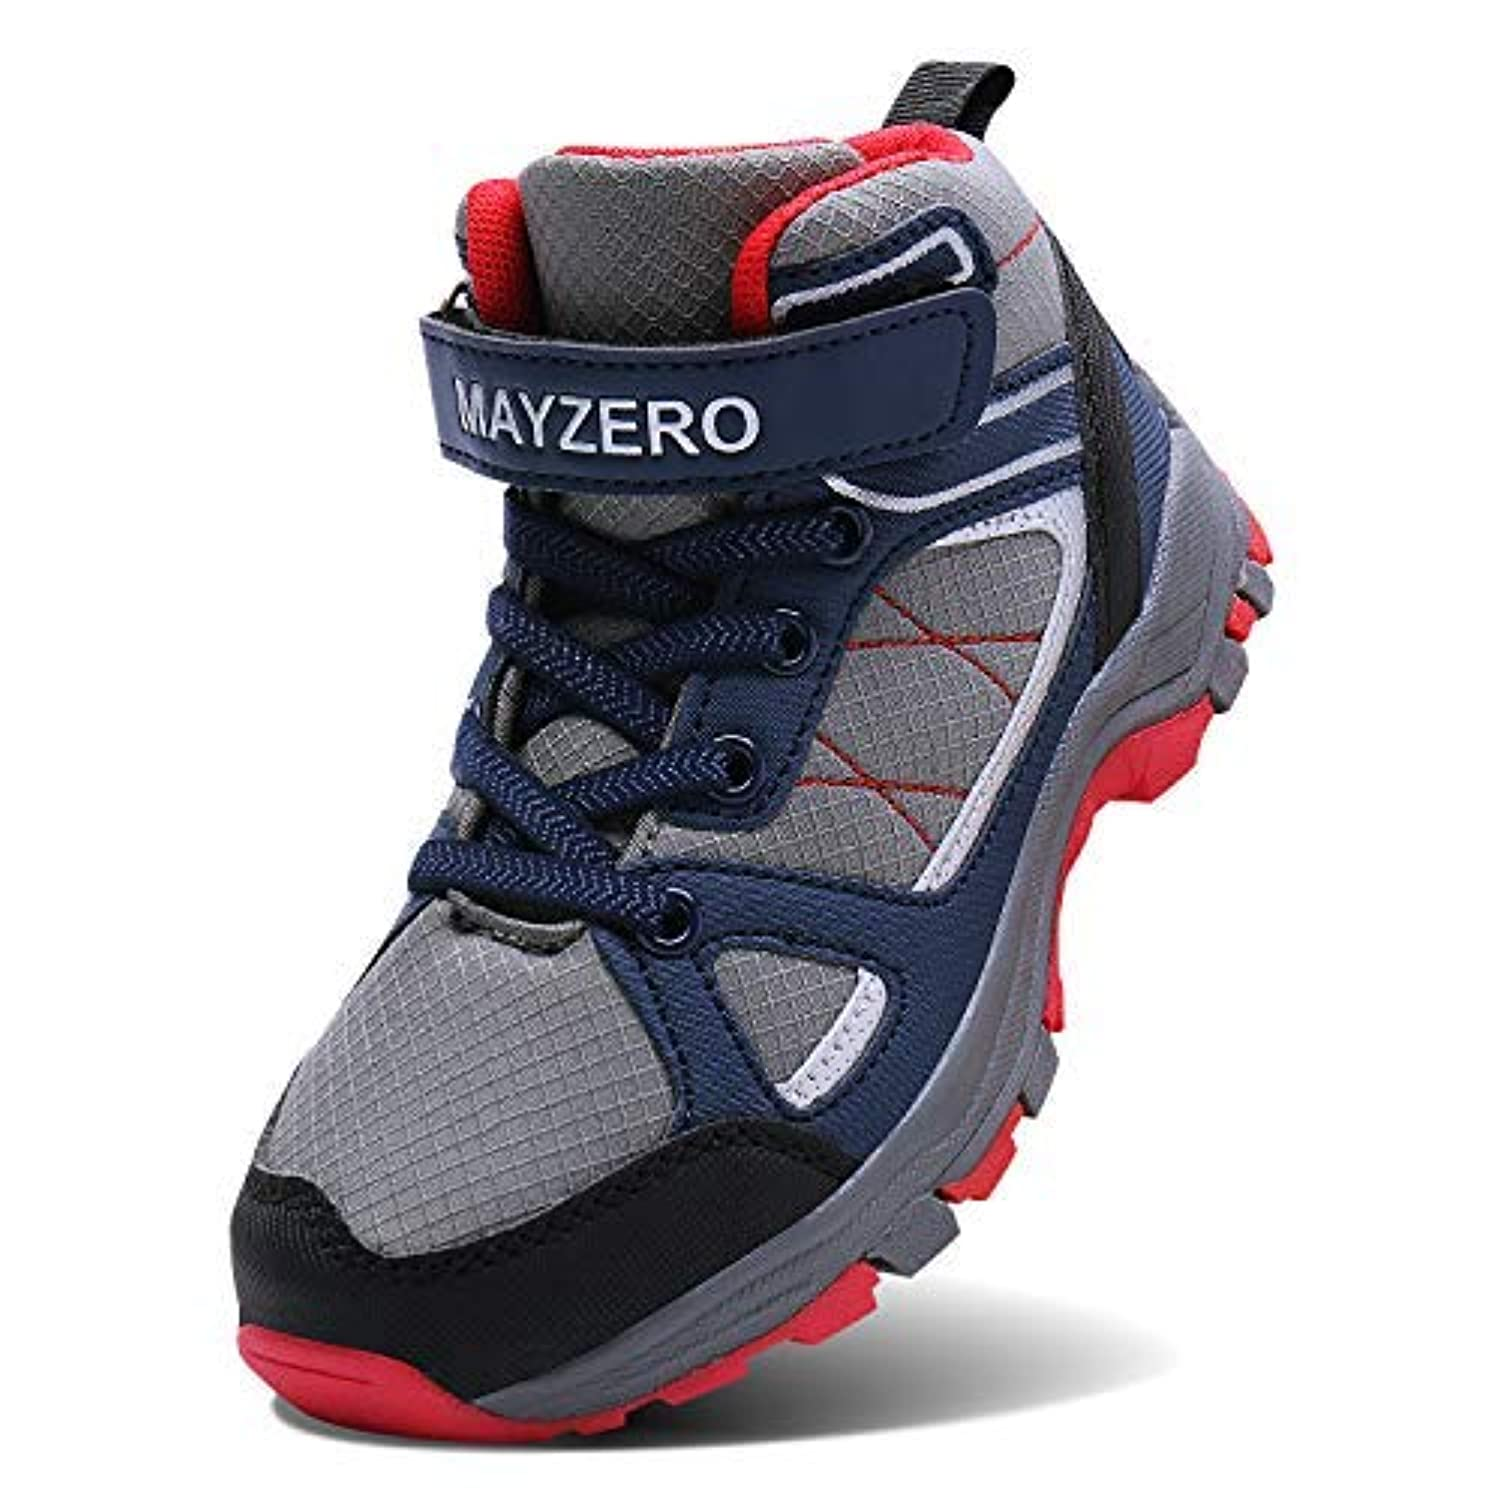 Caitin Kids Hiking Boots Lightweight Tennis Running Shoes Outdoor Athletic Sneakers for Boys and Girls [並行輸入品]